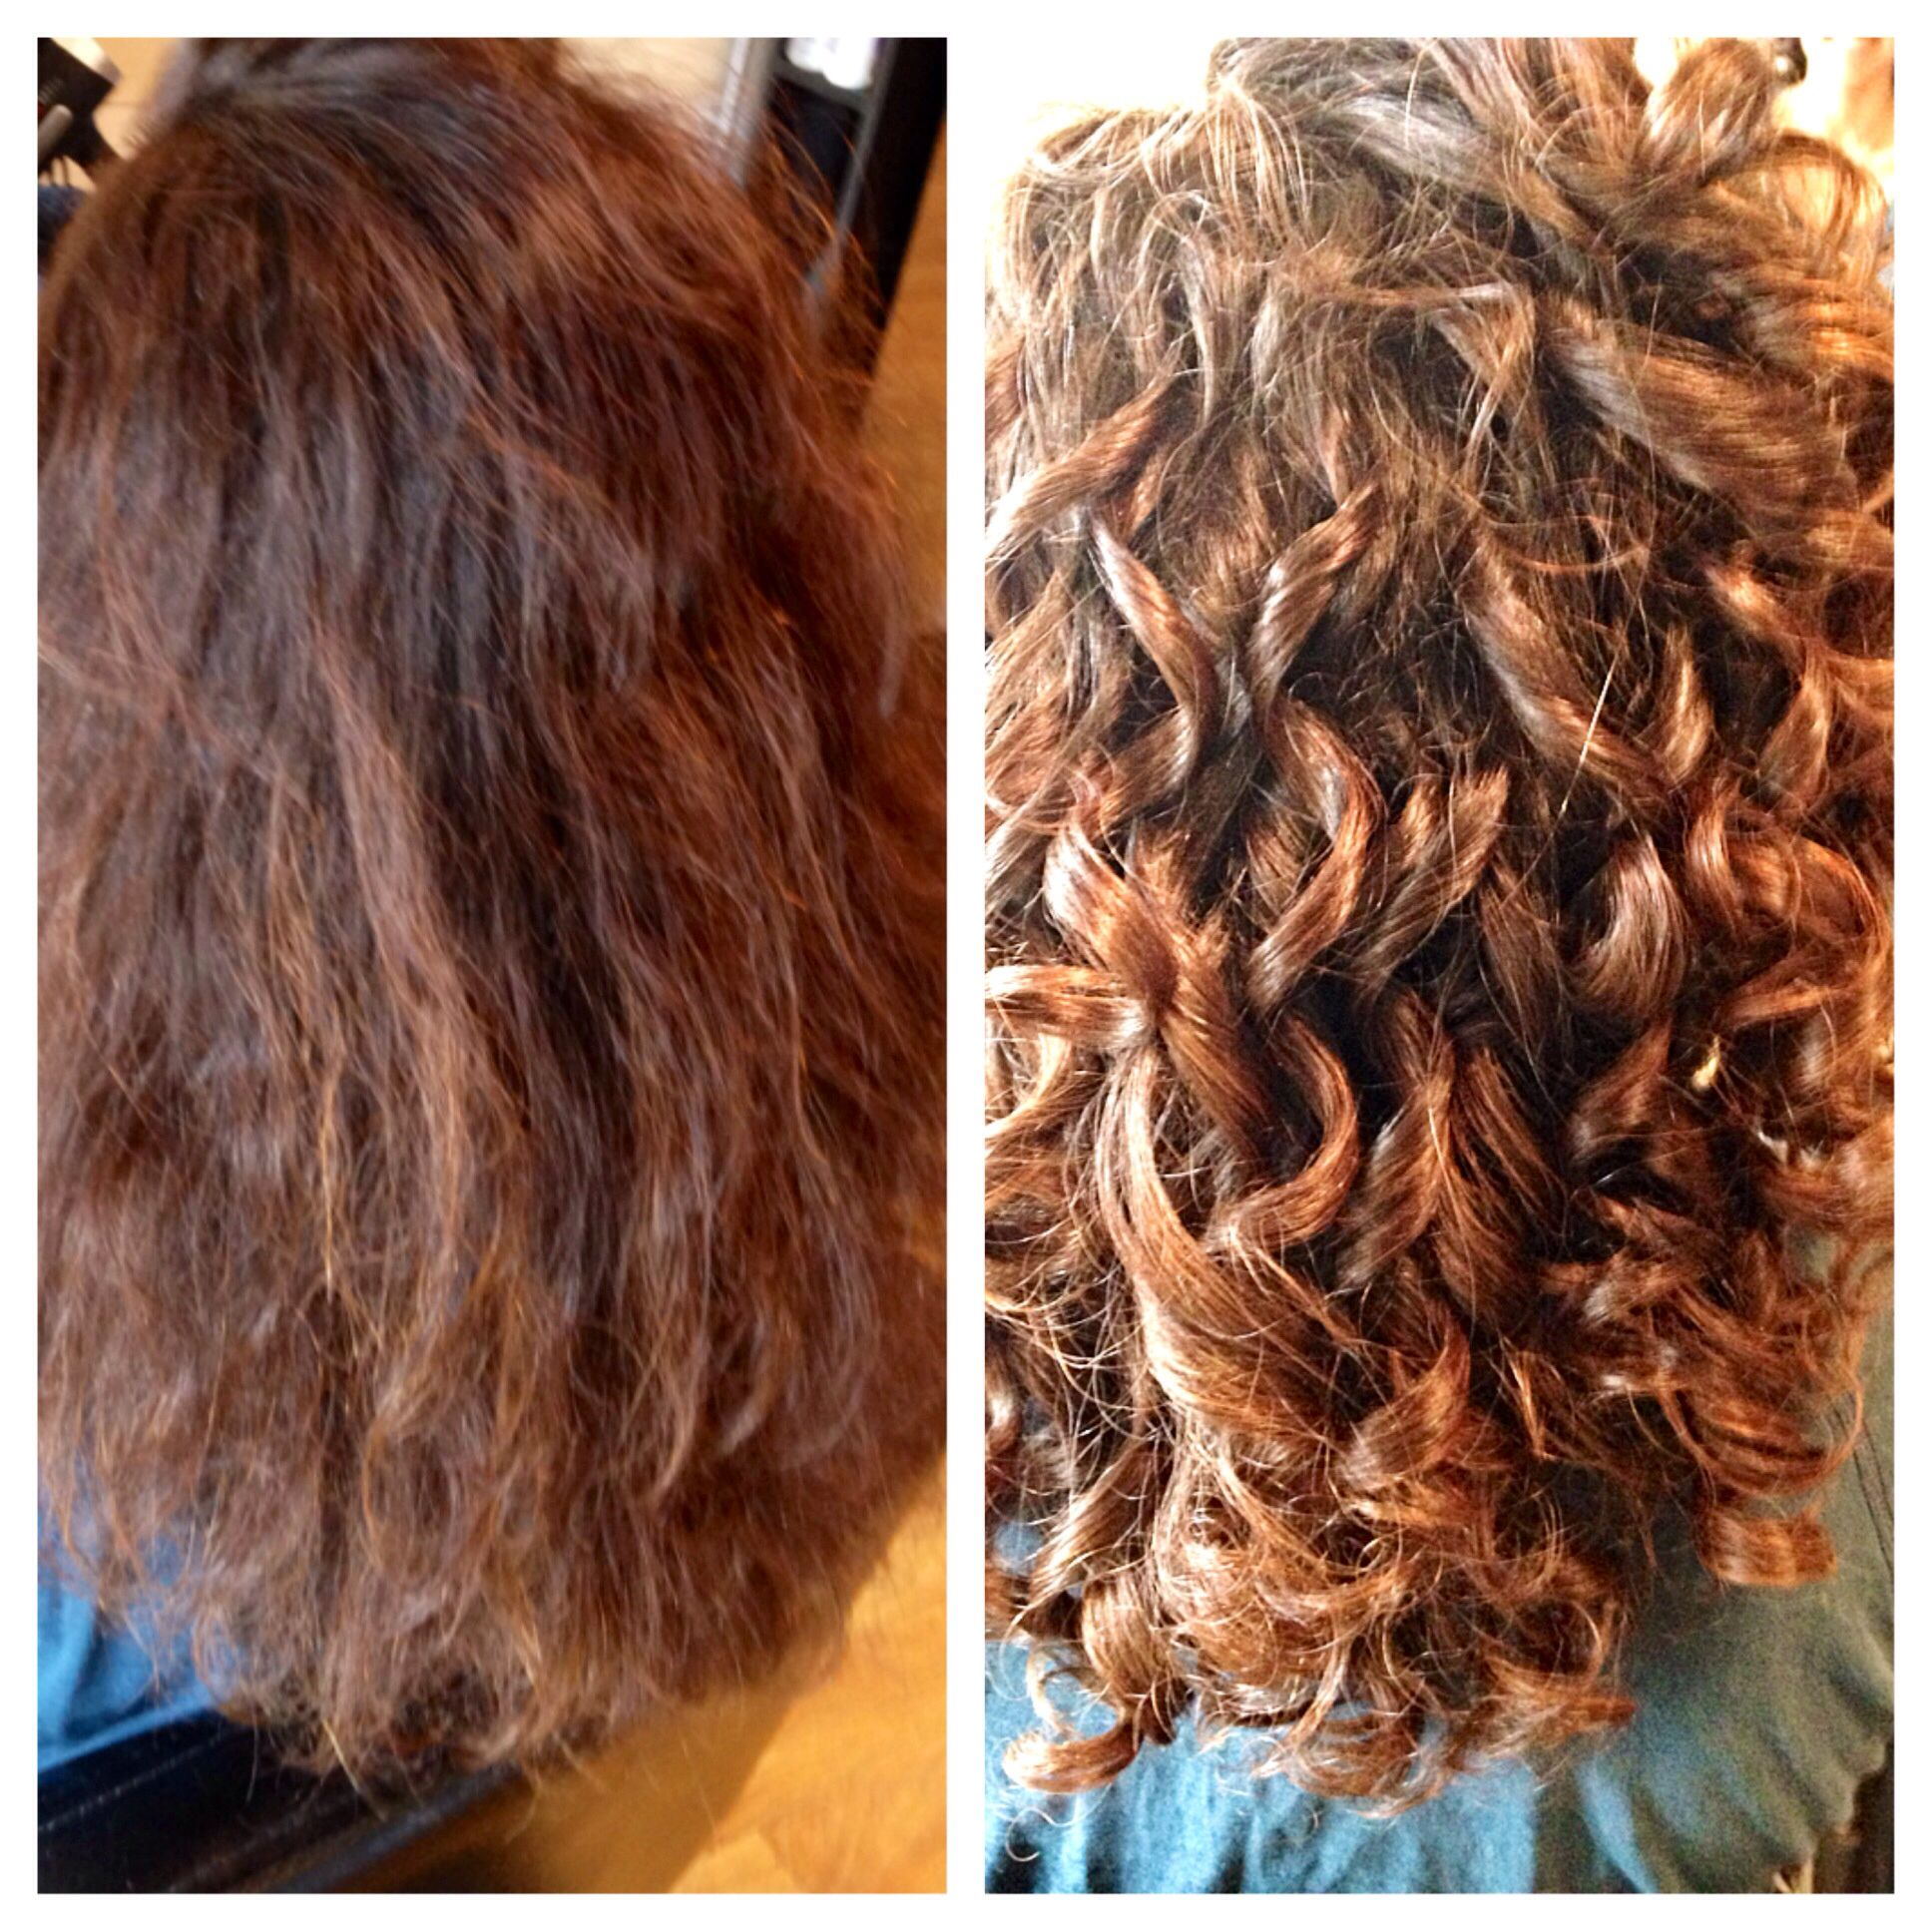 Before and after the curling tool by probliss super cute and so do